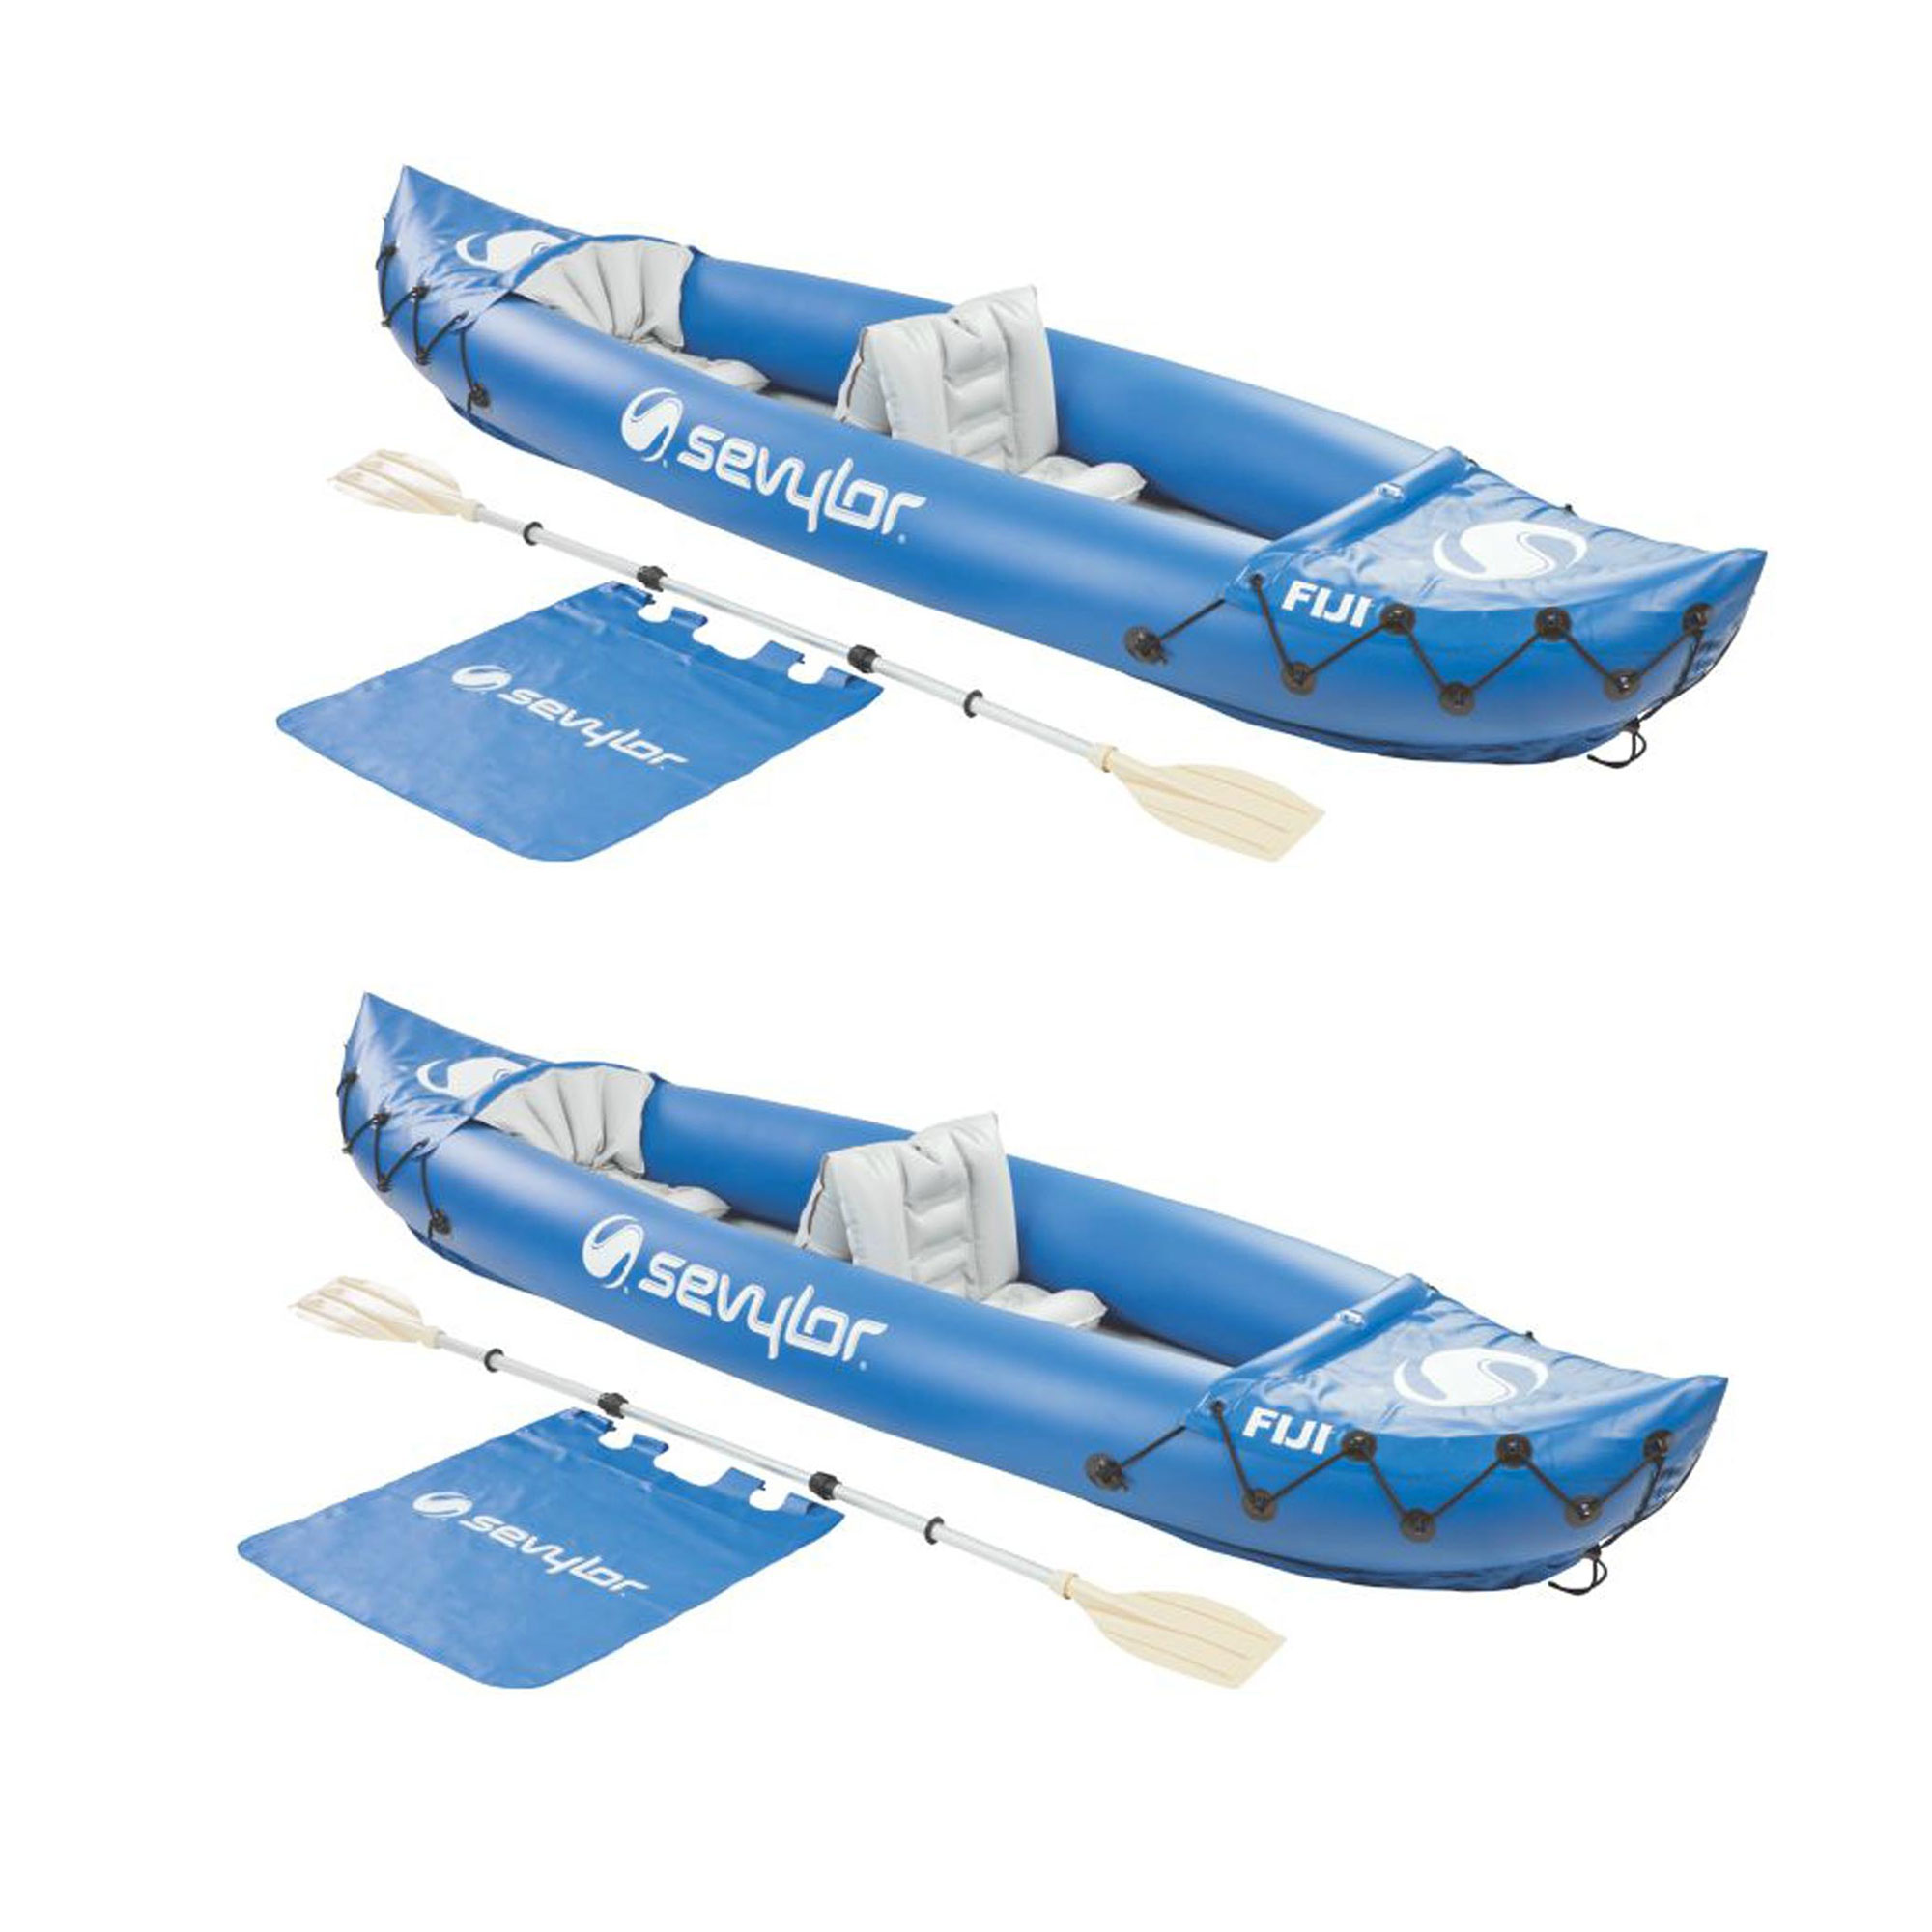 SEVYLOR Fiji 2-Person Inflatable 22 Gauge PVC Travel Boat Raft Kayak (2 Pack)